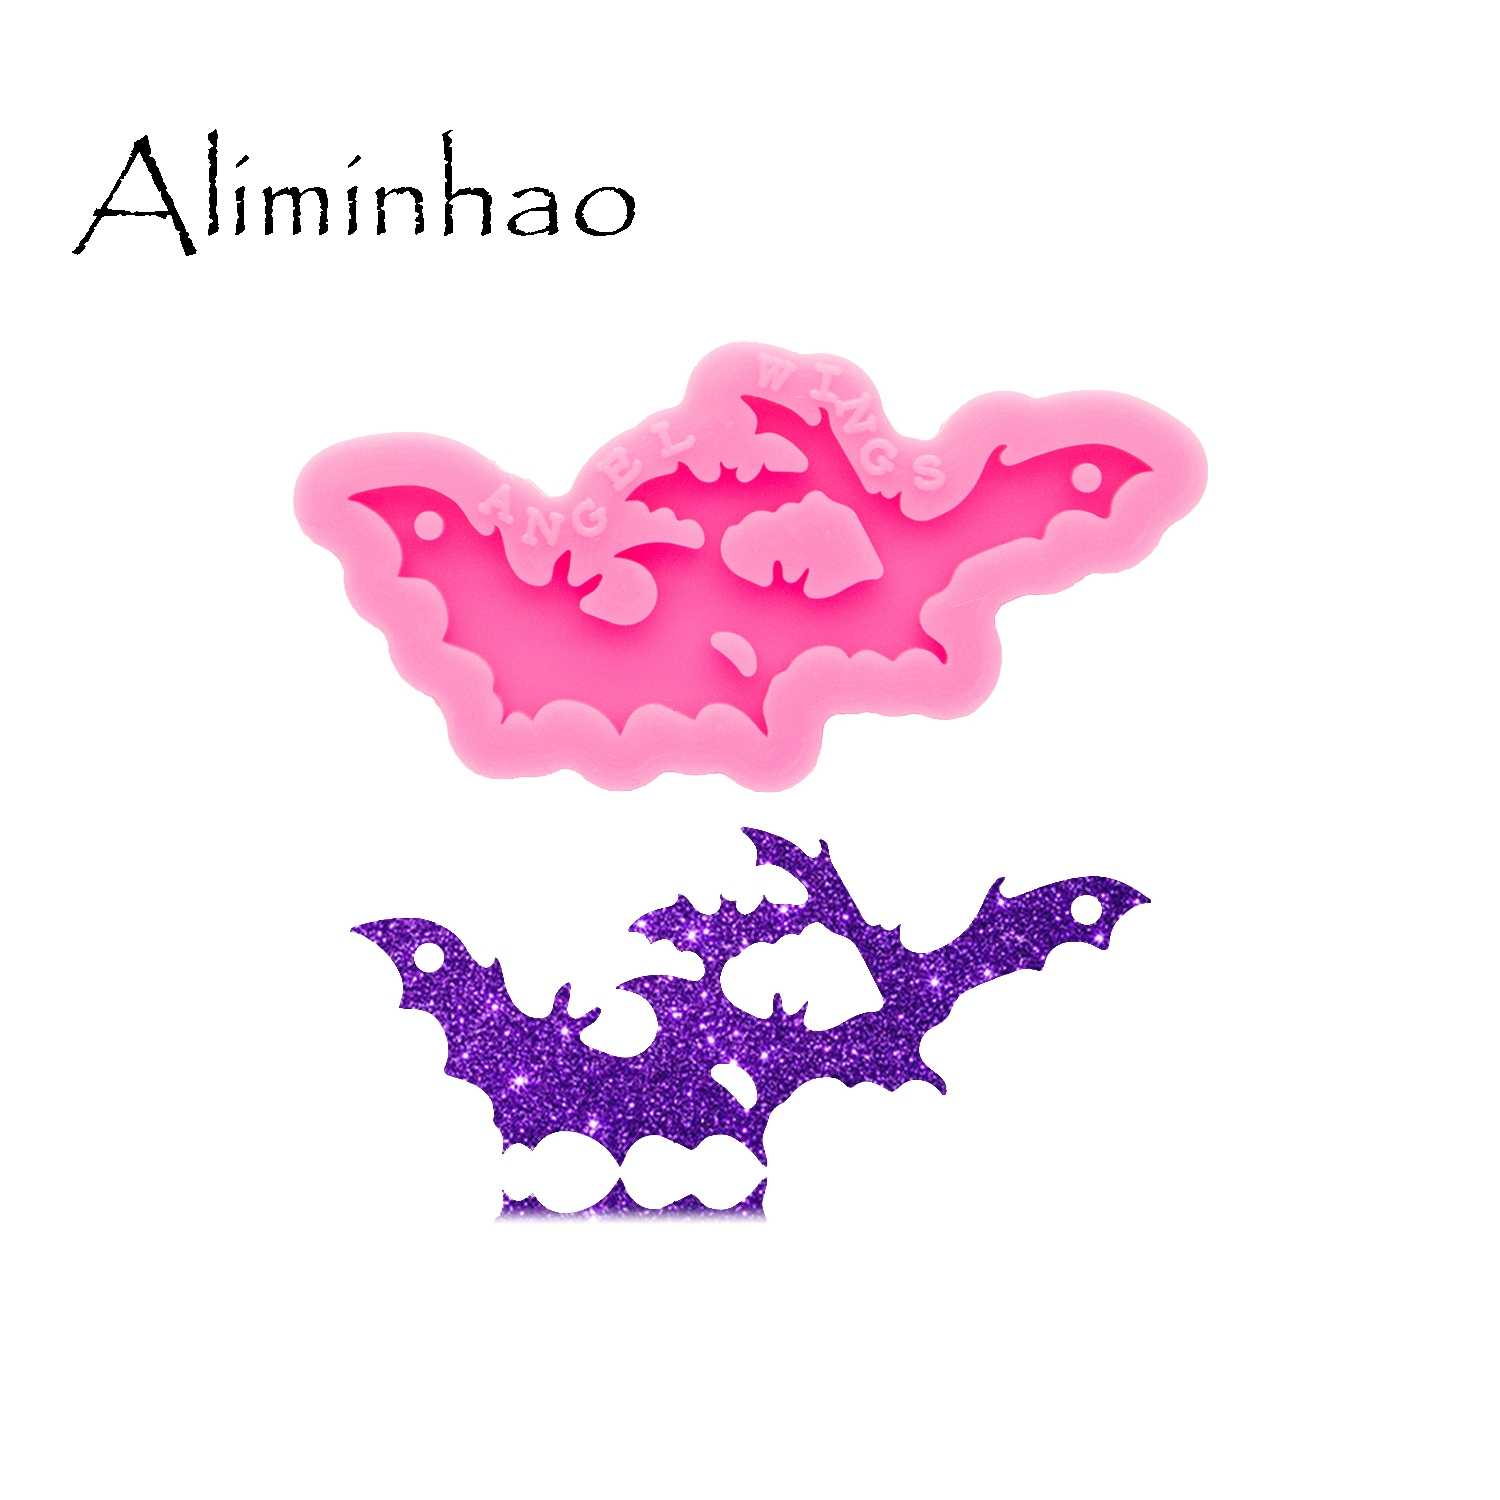 Shiny Glossy Halloween Making Keychain Polymer Clay Mold Necklace Epoxy Jewellery Silicone Mold Resin Crafting molds for Keychains Mold